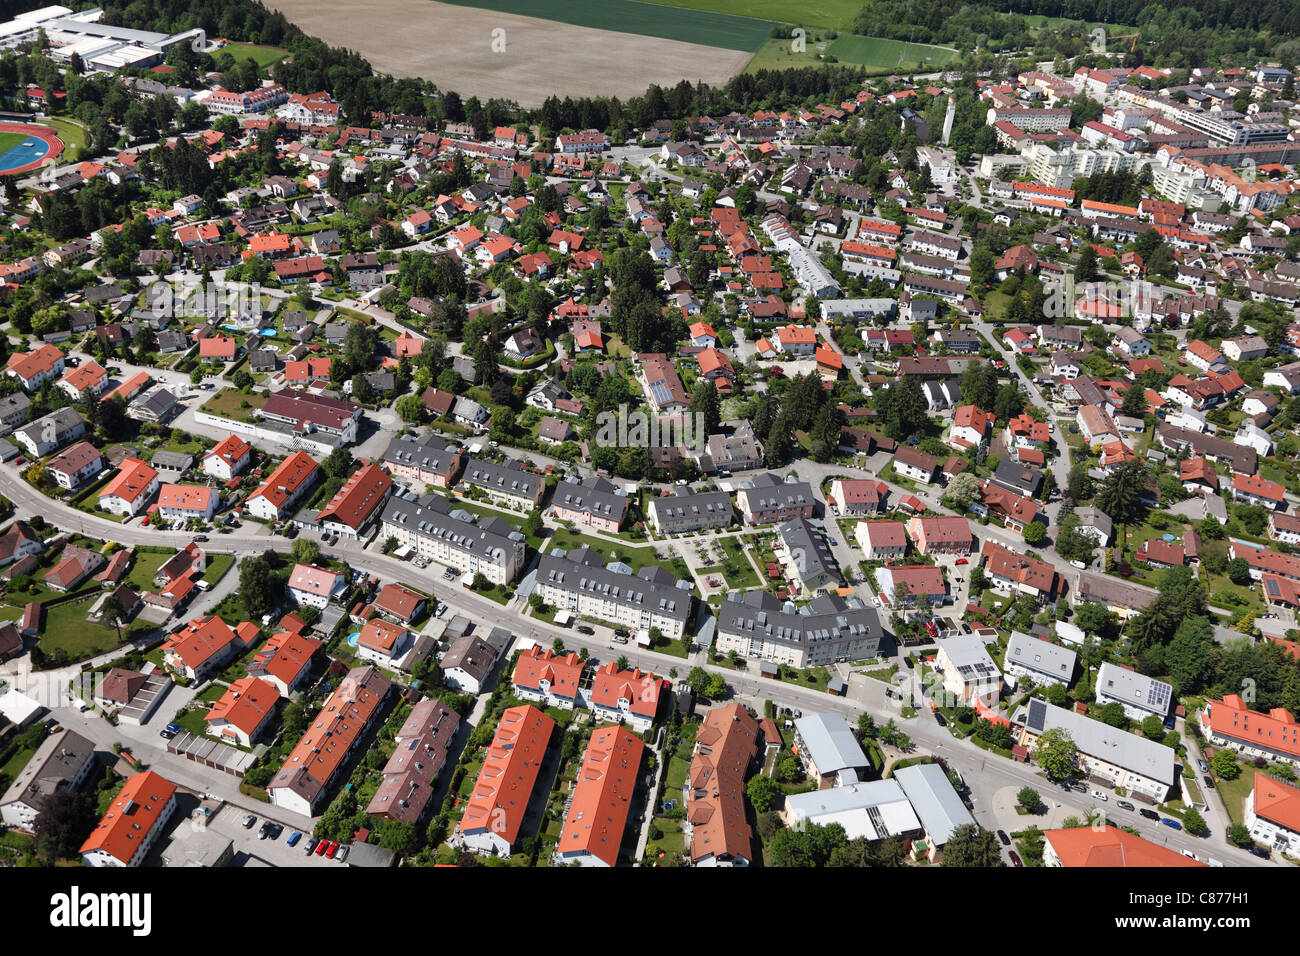 Germany, Bavaria, Upper Bavaria, Geretsried, Aerial view of town Stock Photo